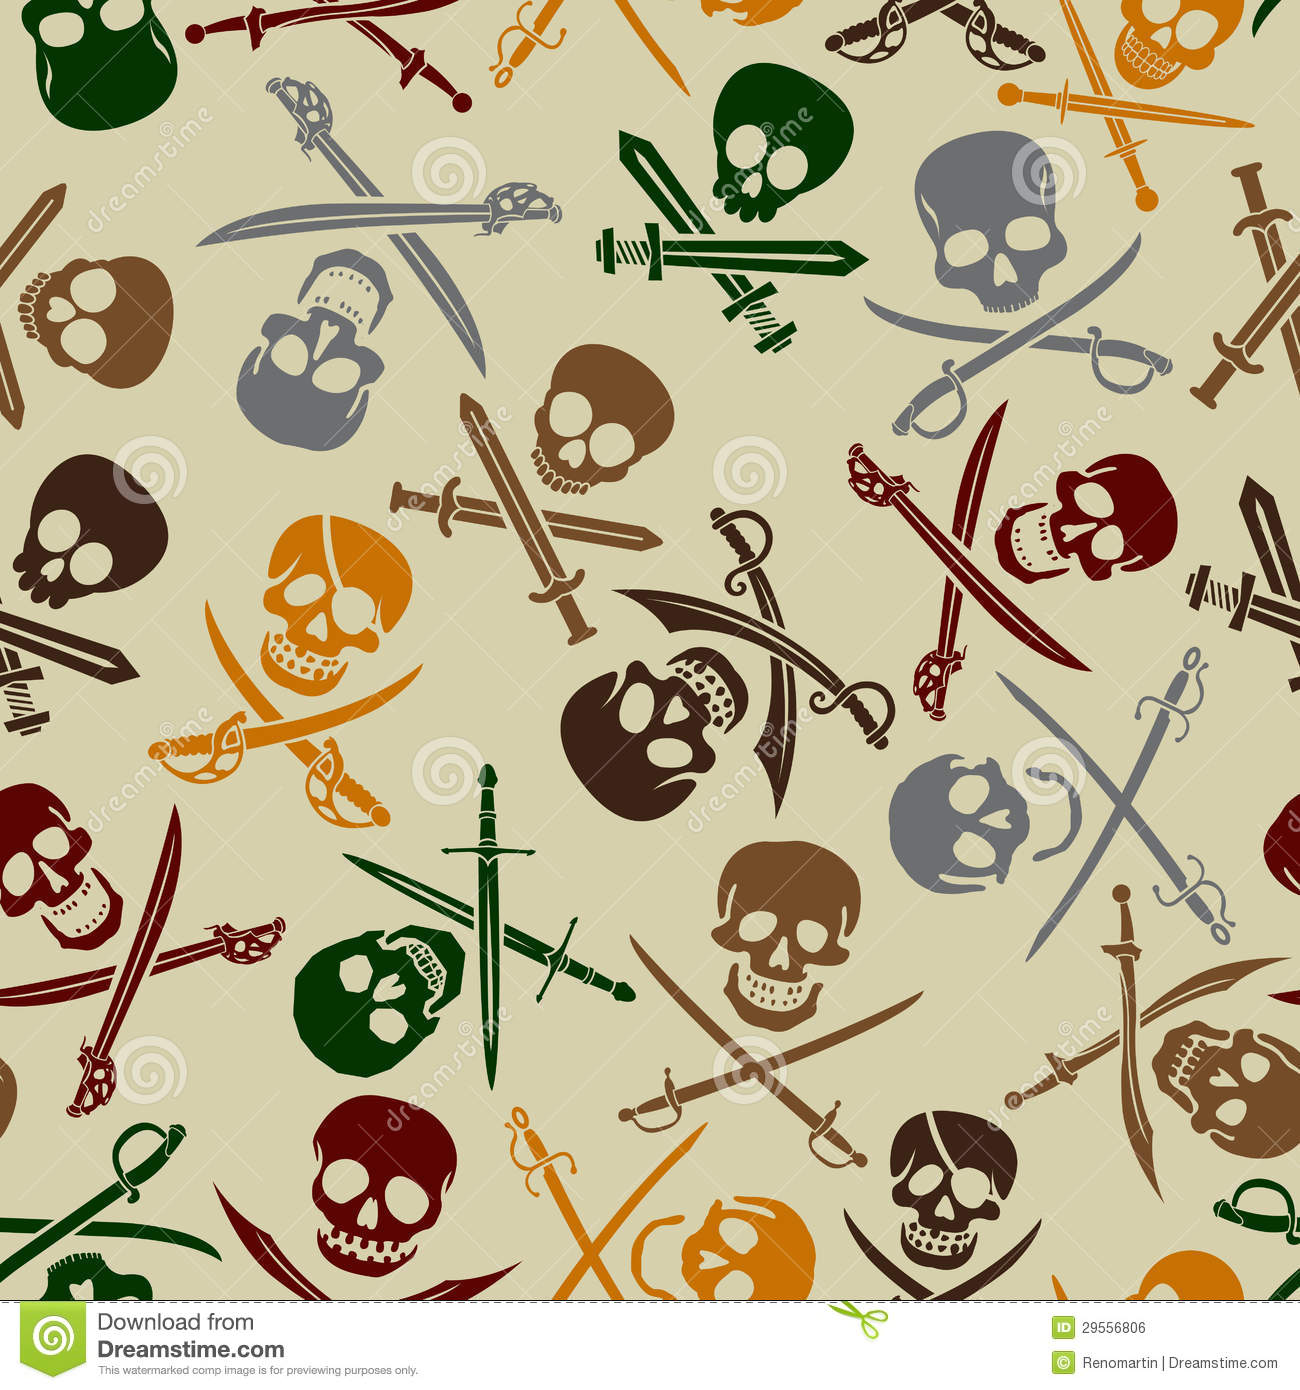 Seamless pattern of ballet dancers royalty free stock photography - Pirate Symbols Seamless Pattern Royalty Free Stock Image